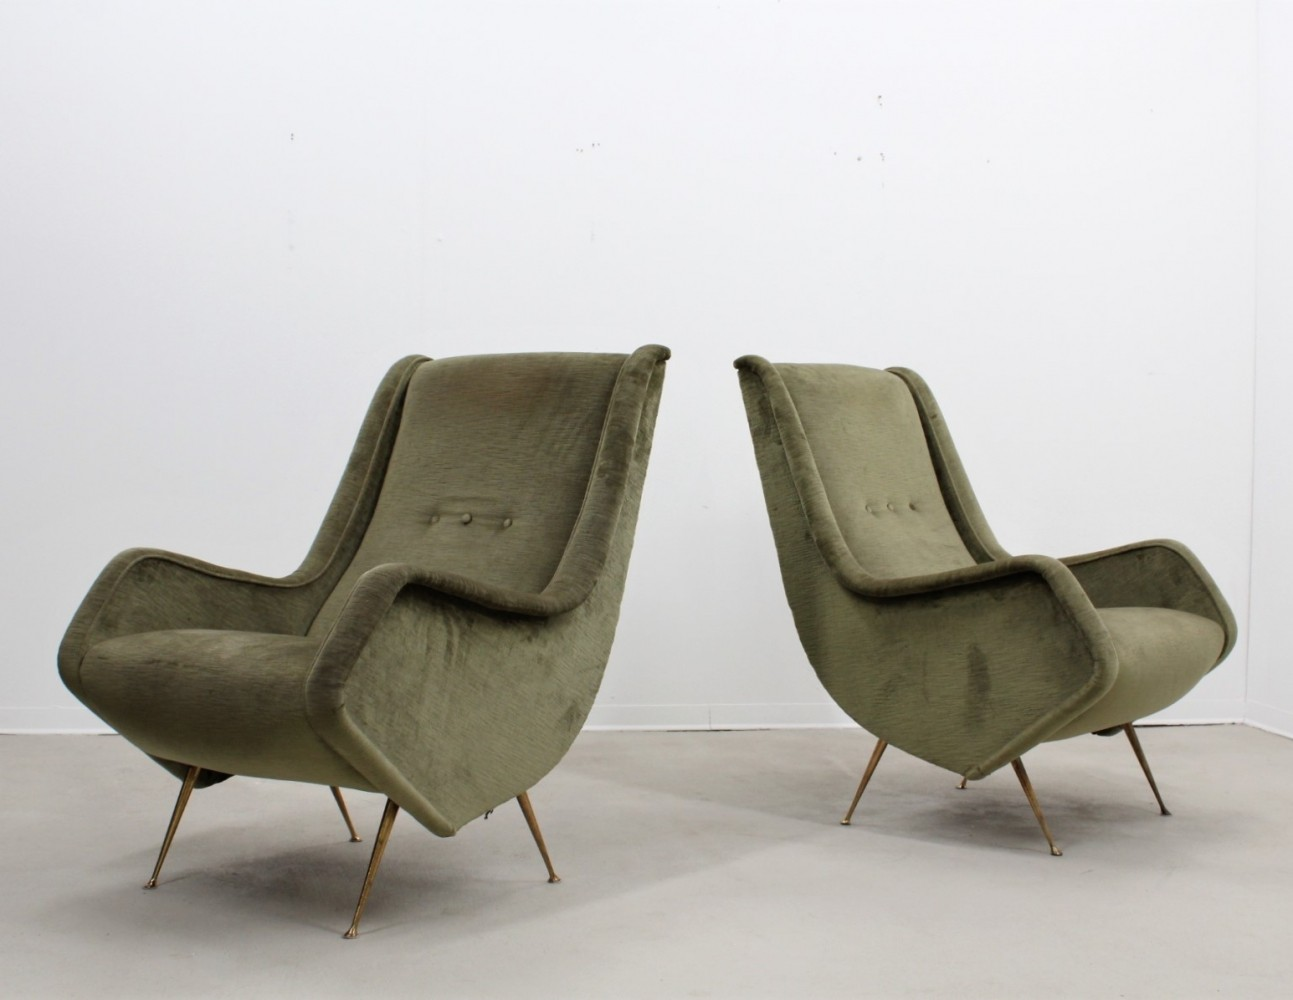 Pair of arm chairs by Aldo Morbelli for ISA, 1950s